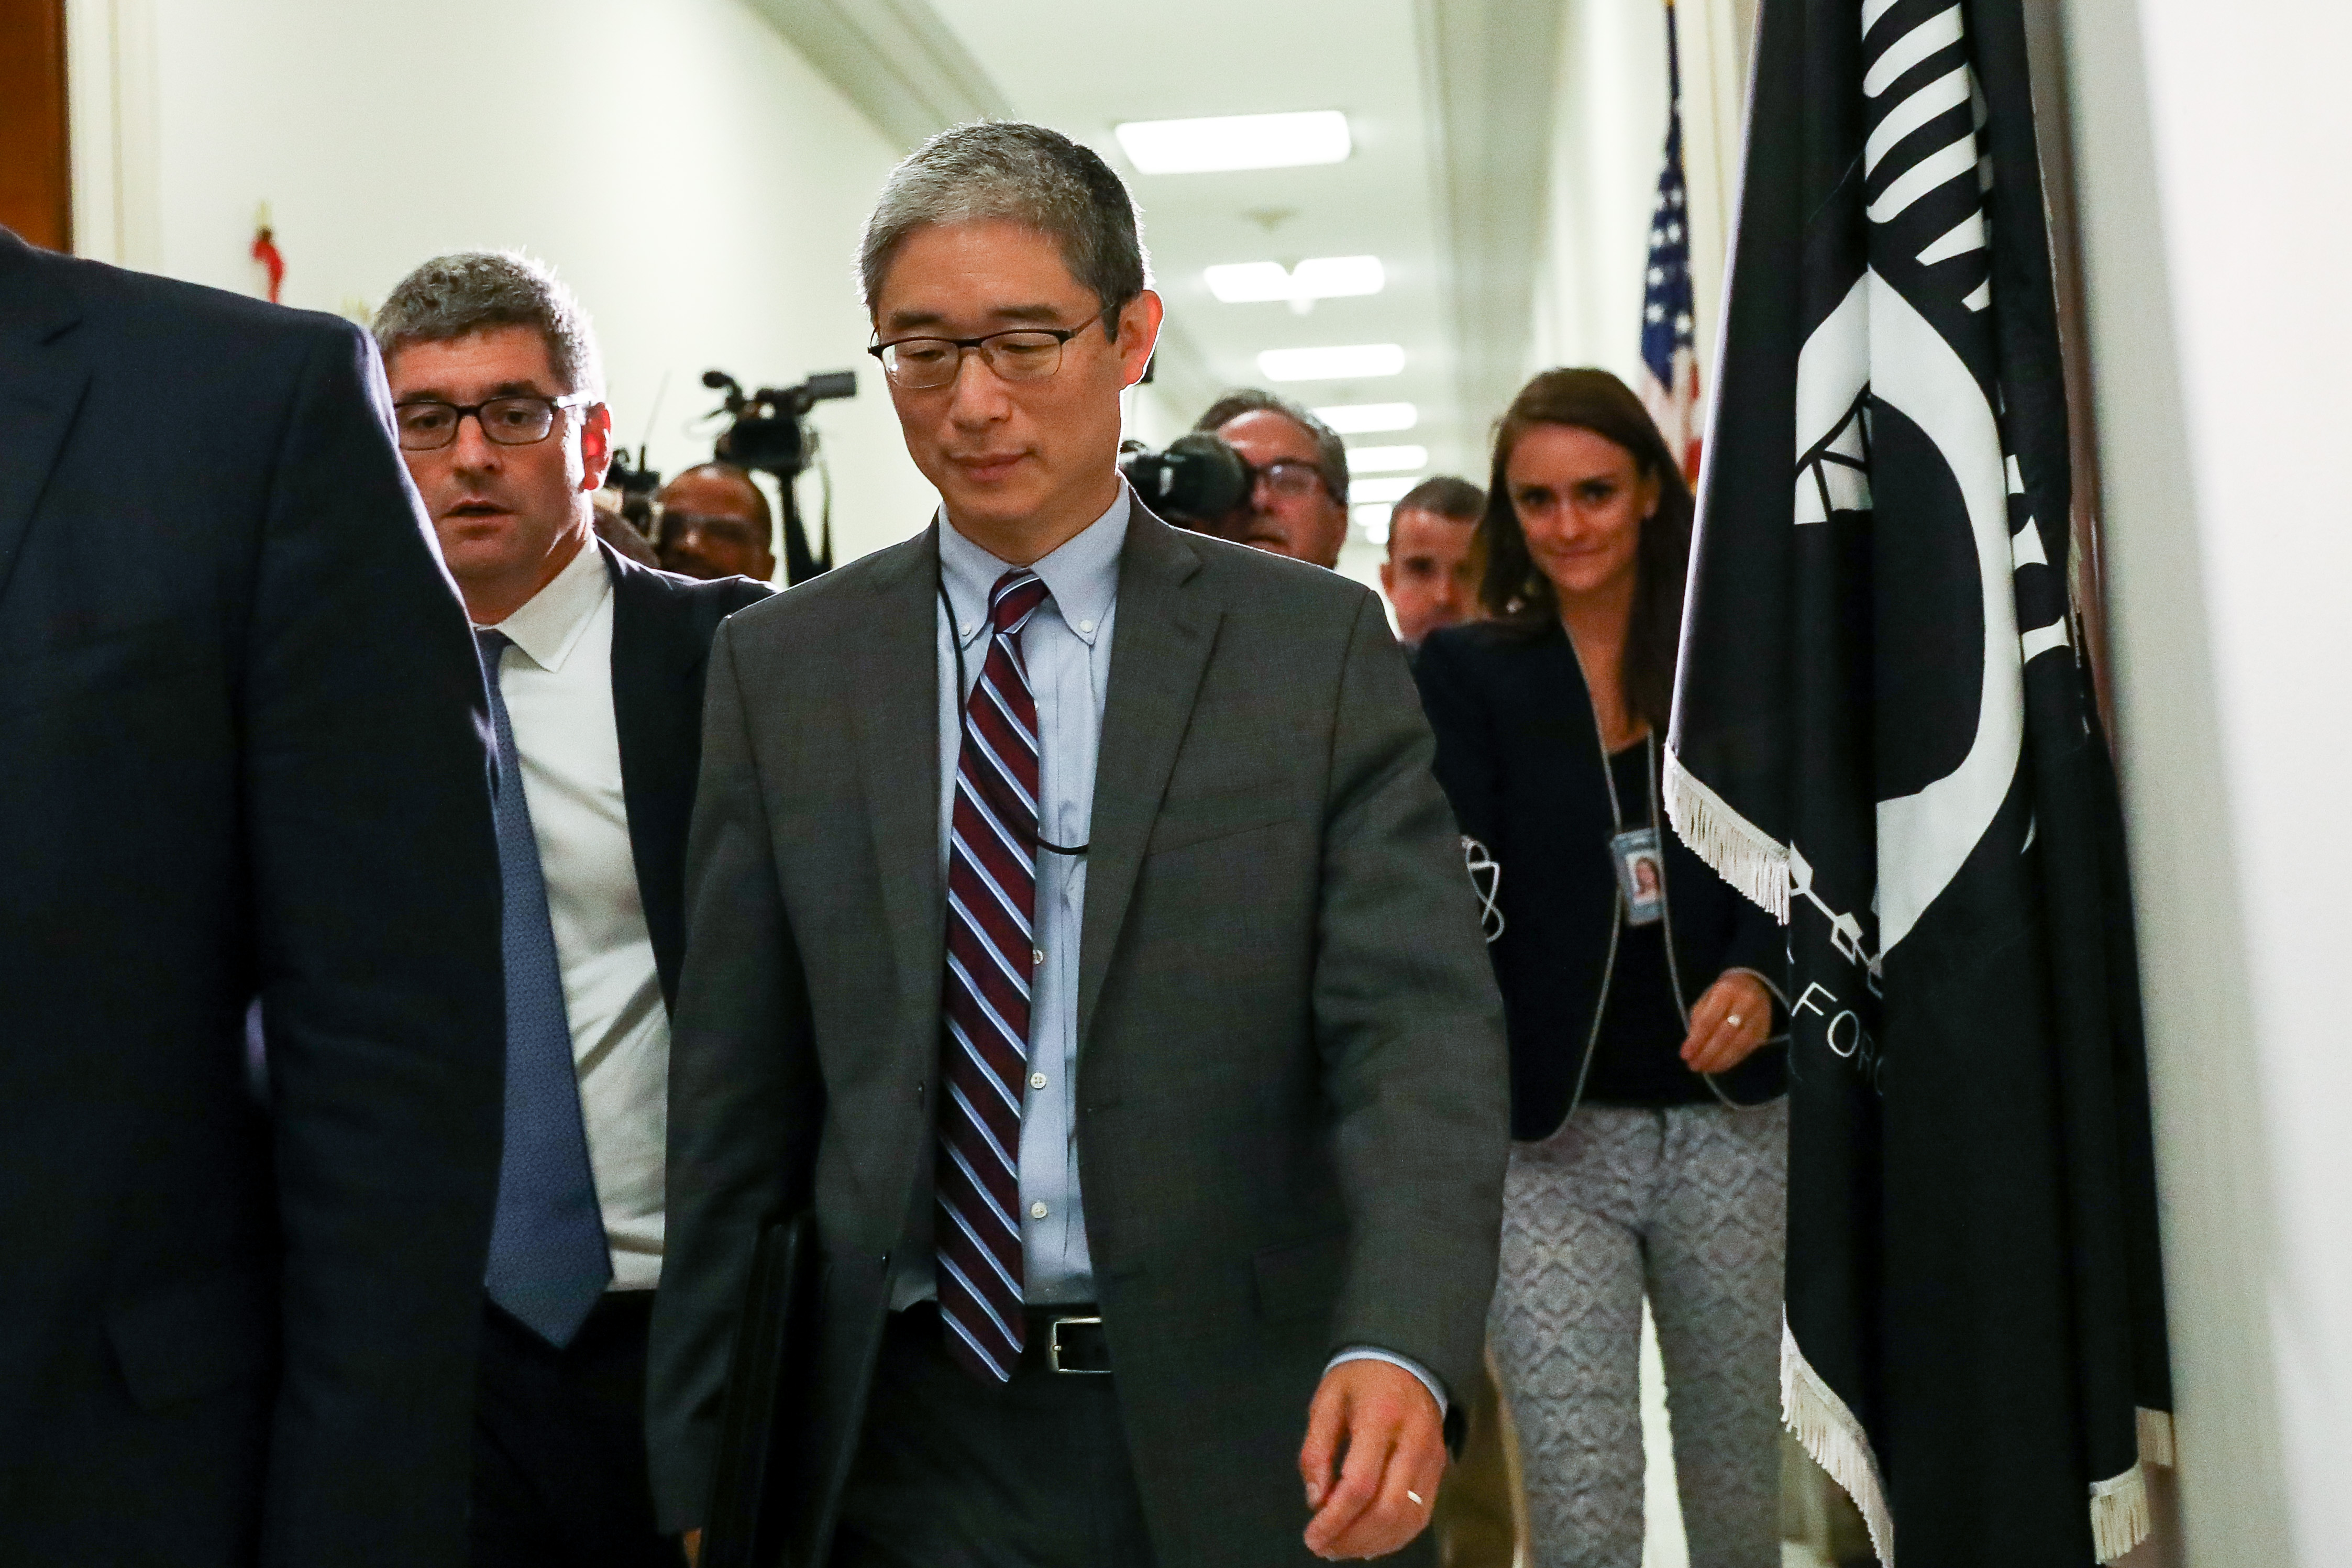 Bruce Ohr (C), a Justice Department official demoted from the posts ofassociate deputy attorney general and director of the Organized Crime Drug Enforcement Task Force, leaves for a lunch break from a closed hearing with the House Judiciary and House Oversight and Government Reform committees on Capitol Hill in Washington, on Aug. 28, 2018.